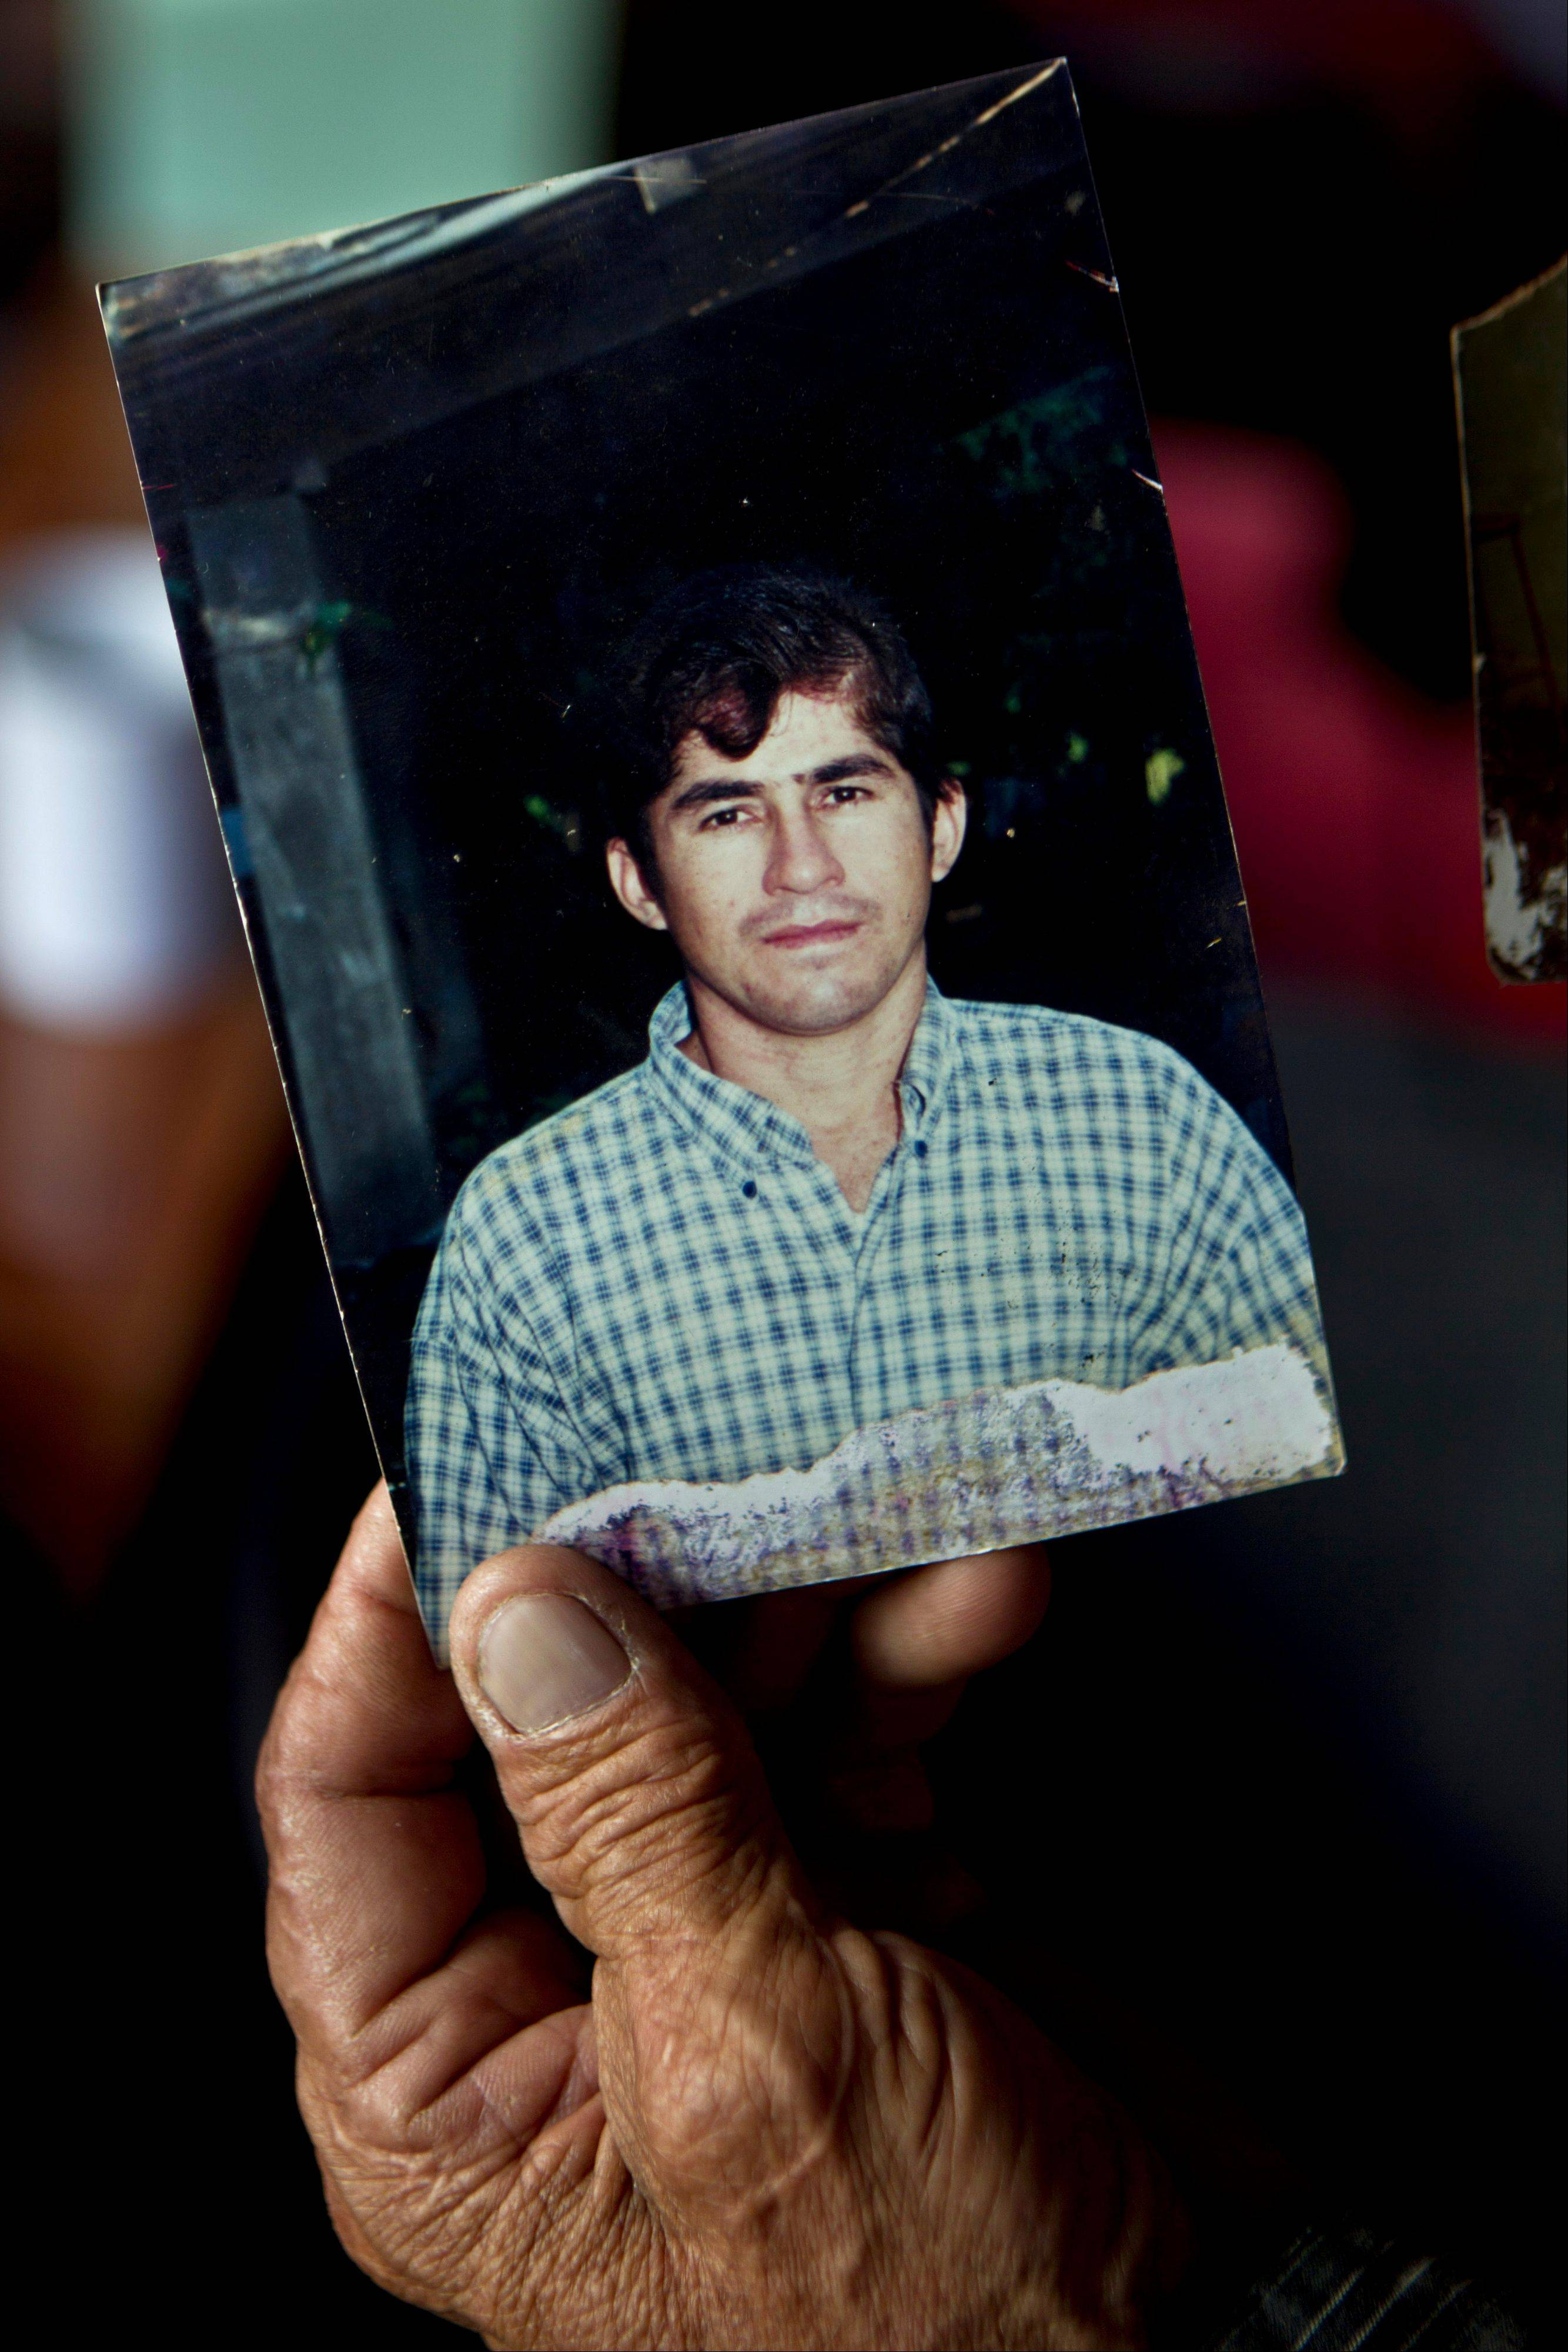 Jose Ricardo Orellana shows a photo of his son Jose Salvador Alvarenga when he was in his late twenties during an interview at his home in the village of Garita Palmera, El Salvador, Tuesday. The account of Alvarenga's survival after more than 13 months in an open boat has proven a double miracle for his family, who lost touch with him years ago and thought he was dead. Alvarenga says he left Mexico in December 2012 for a day of shark fishing and ended up on the remote Marshall Islands.